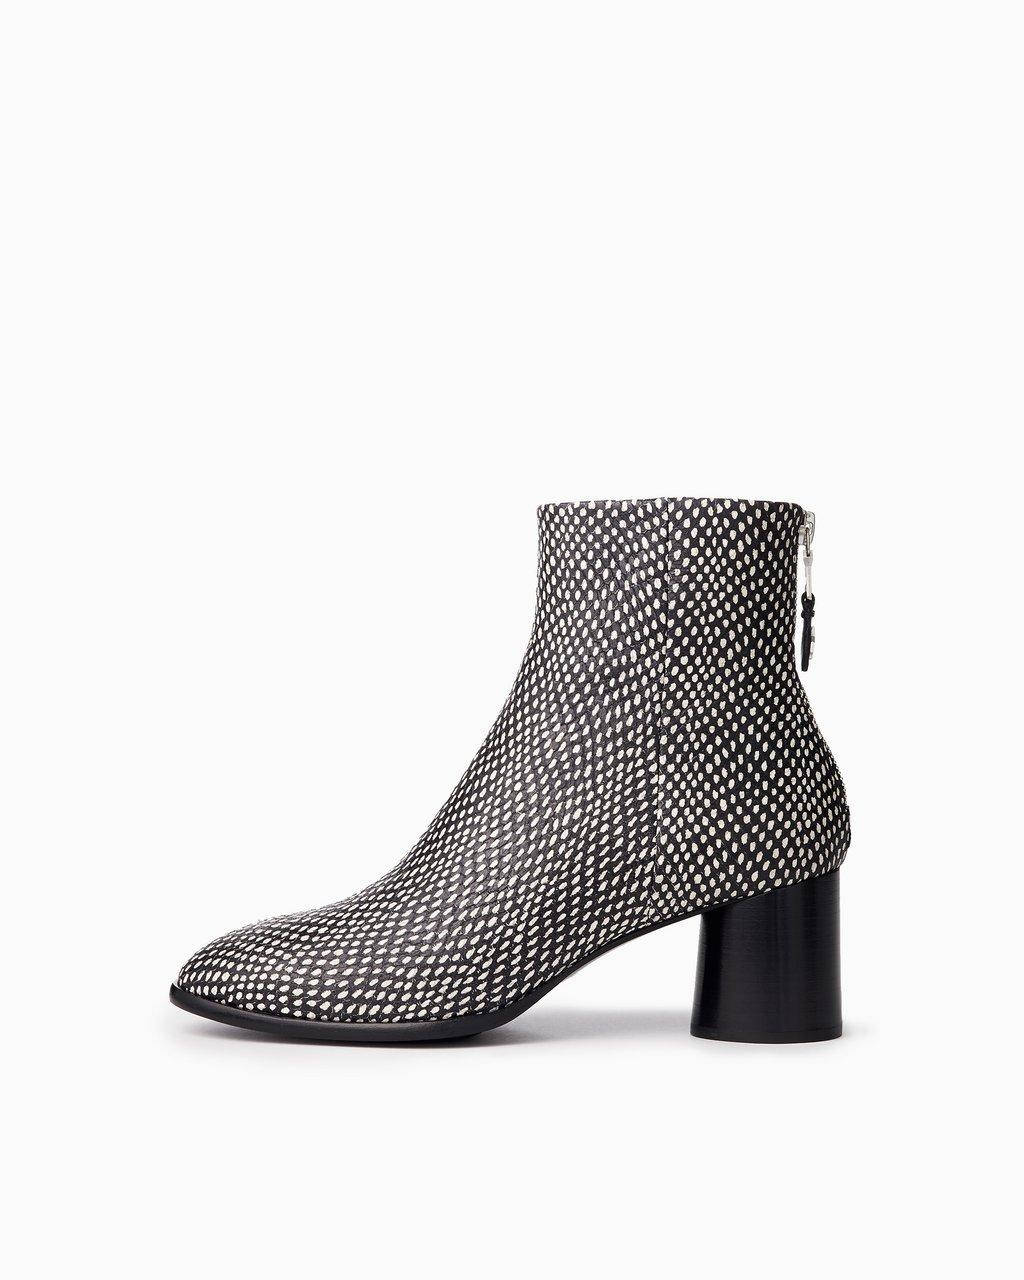 Fleur Boot - Leather